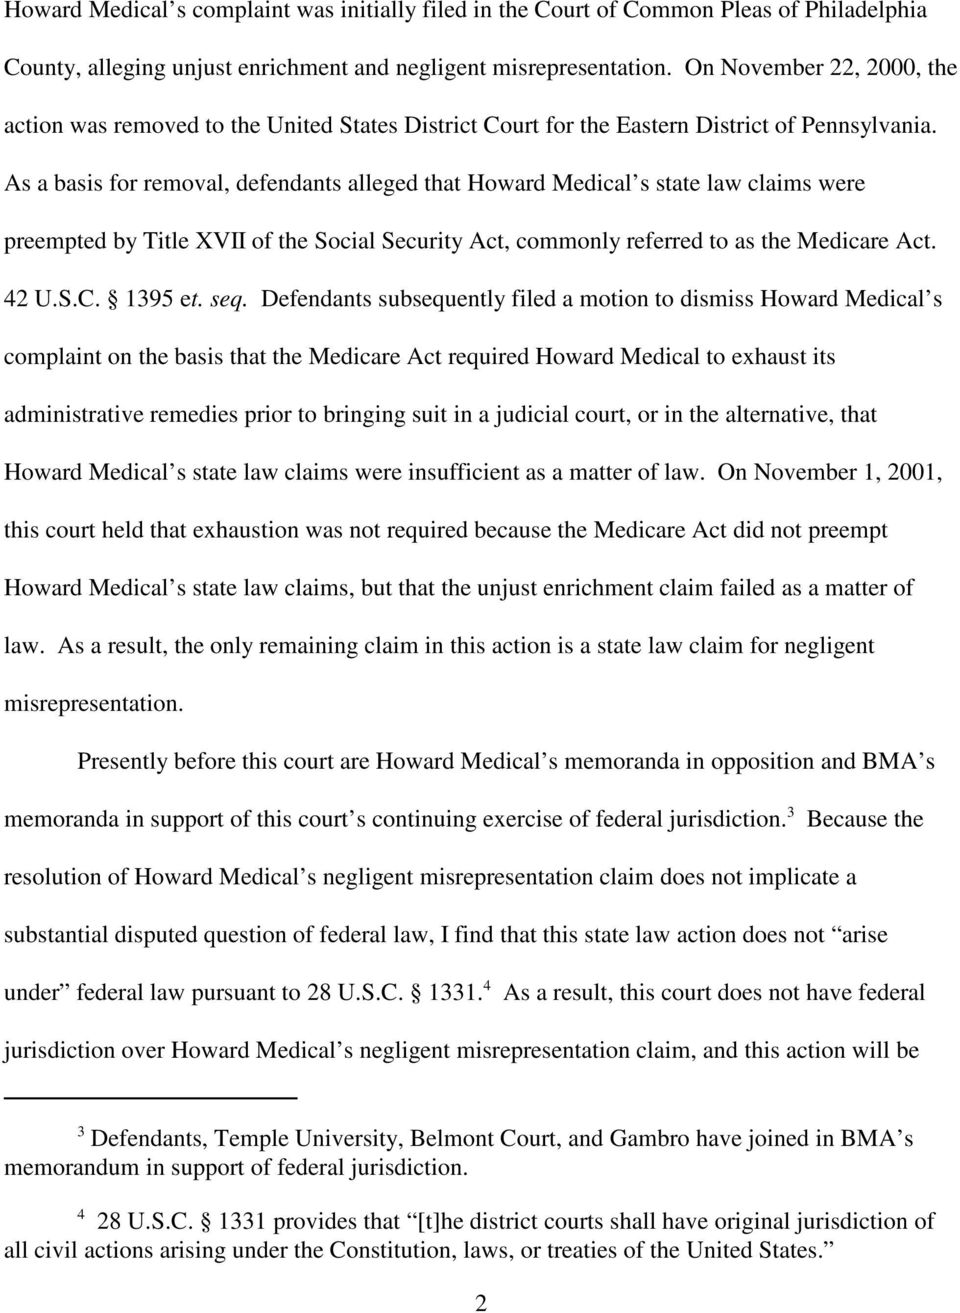 As a basis for removal, defendants alleged that Howard Medical s state law claims were preempted by Title XVII of the Social Security Act, commonly referred to as the Medicare Act. 42 U.S.C. 1395 et.